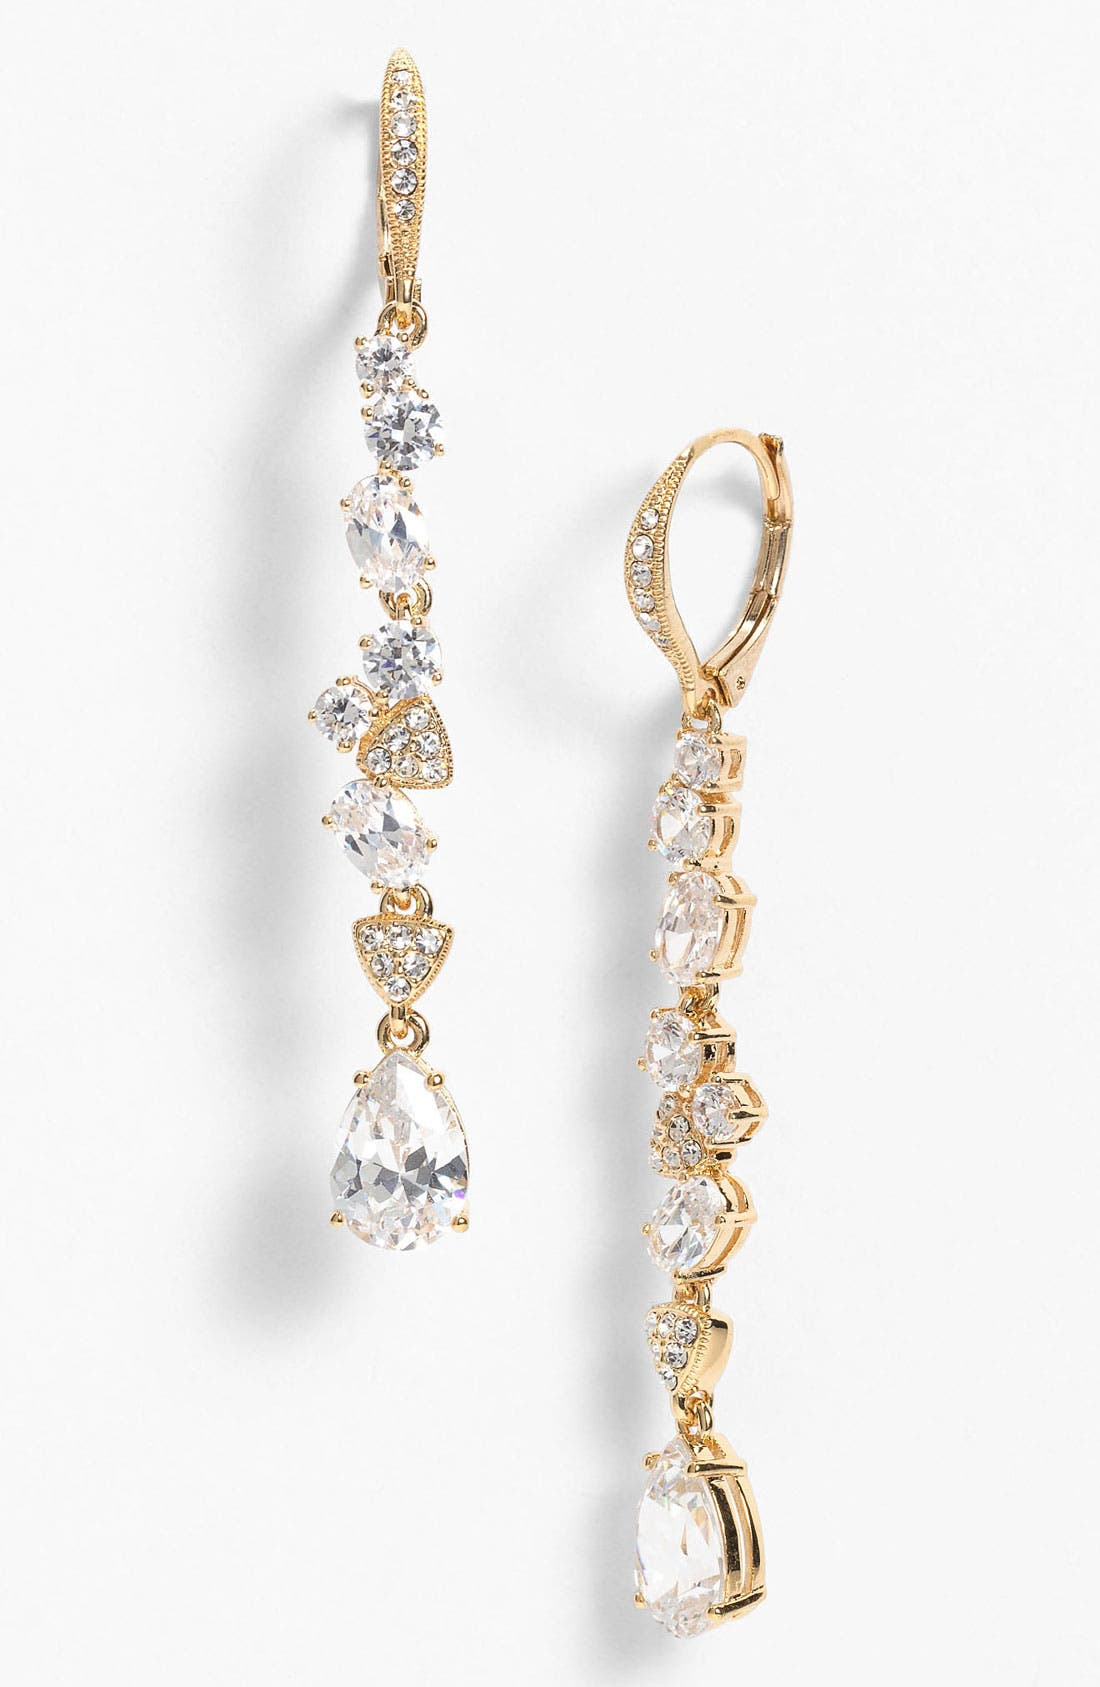 Main Image - Nadri Cubic Zirconia Cluster Linear Earrings (Nordstrom Exclusive)